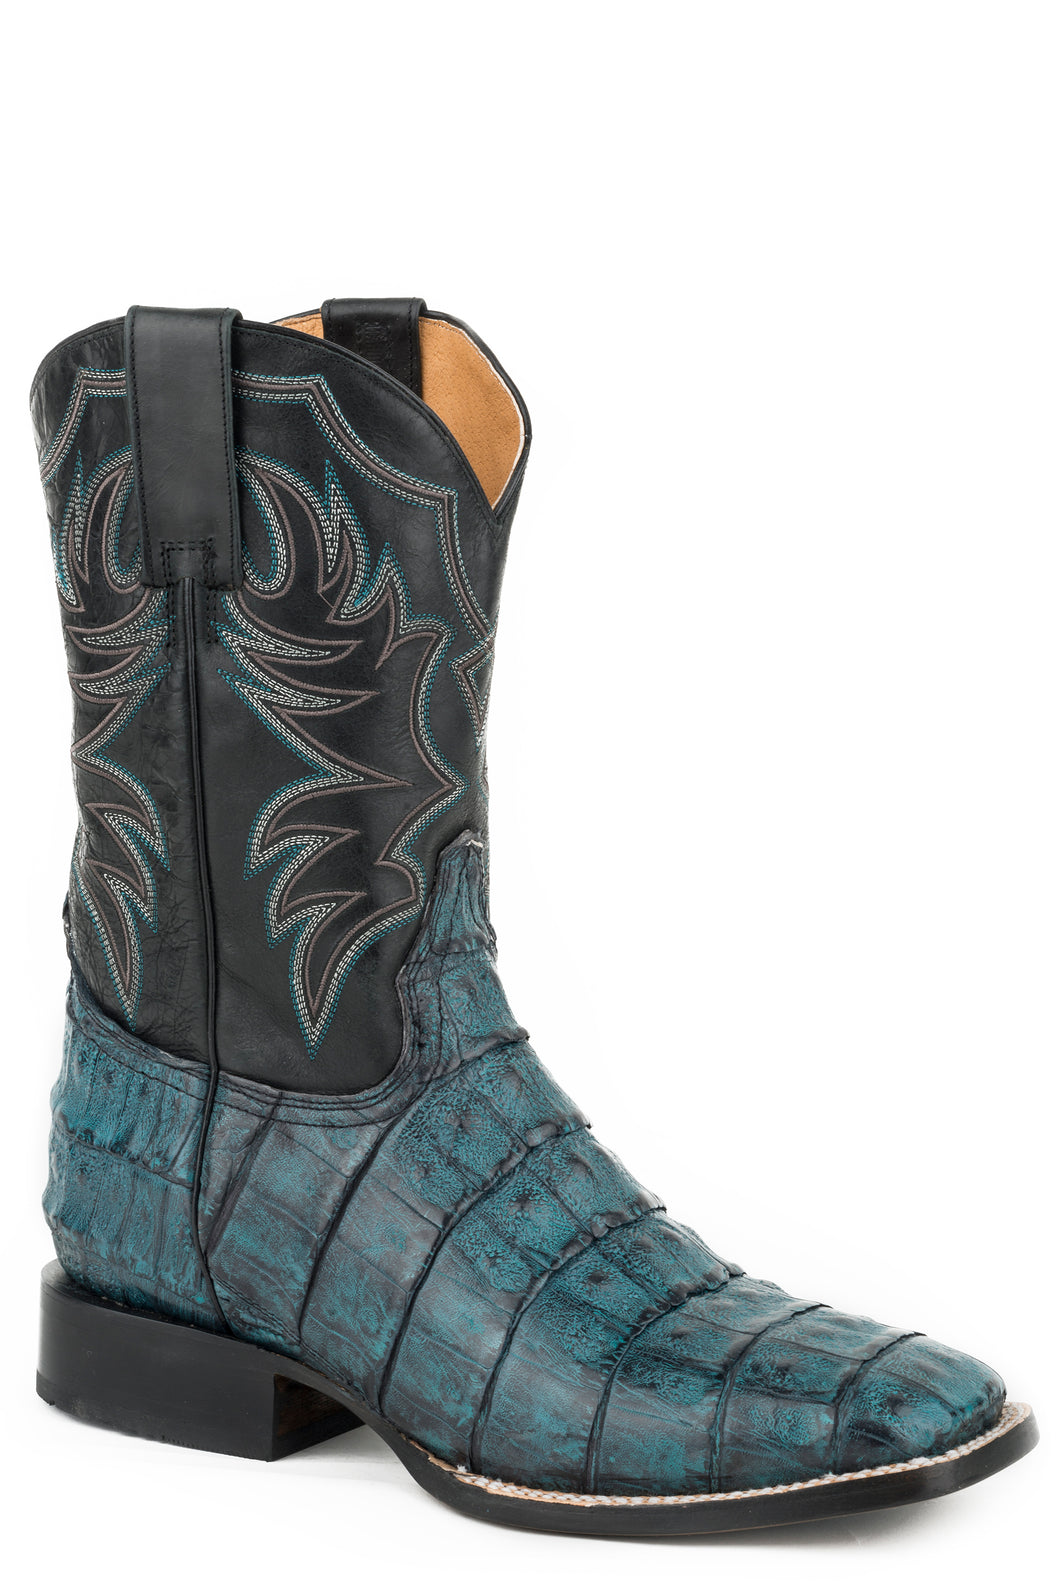 All In Boot Mens Boots Blue Brushoff Belly Tail Caiman Vamp